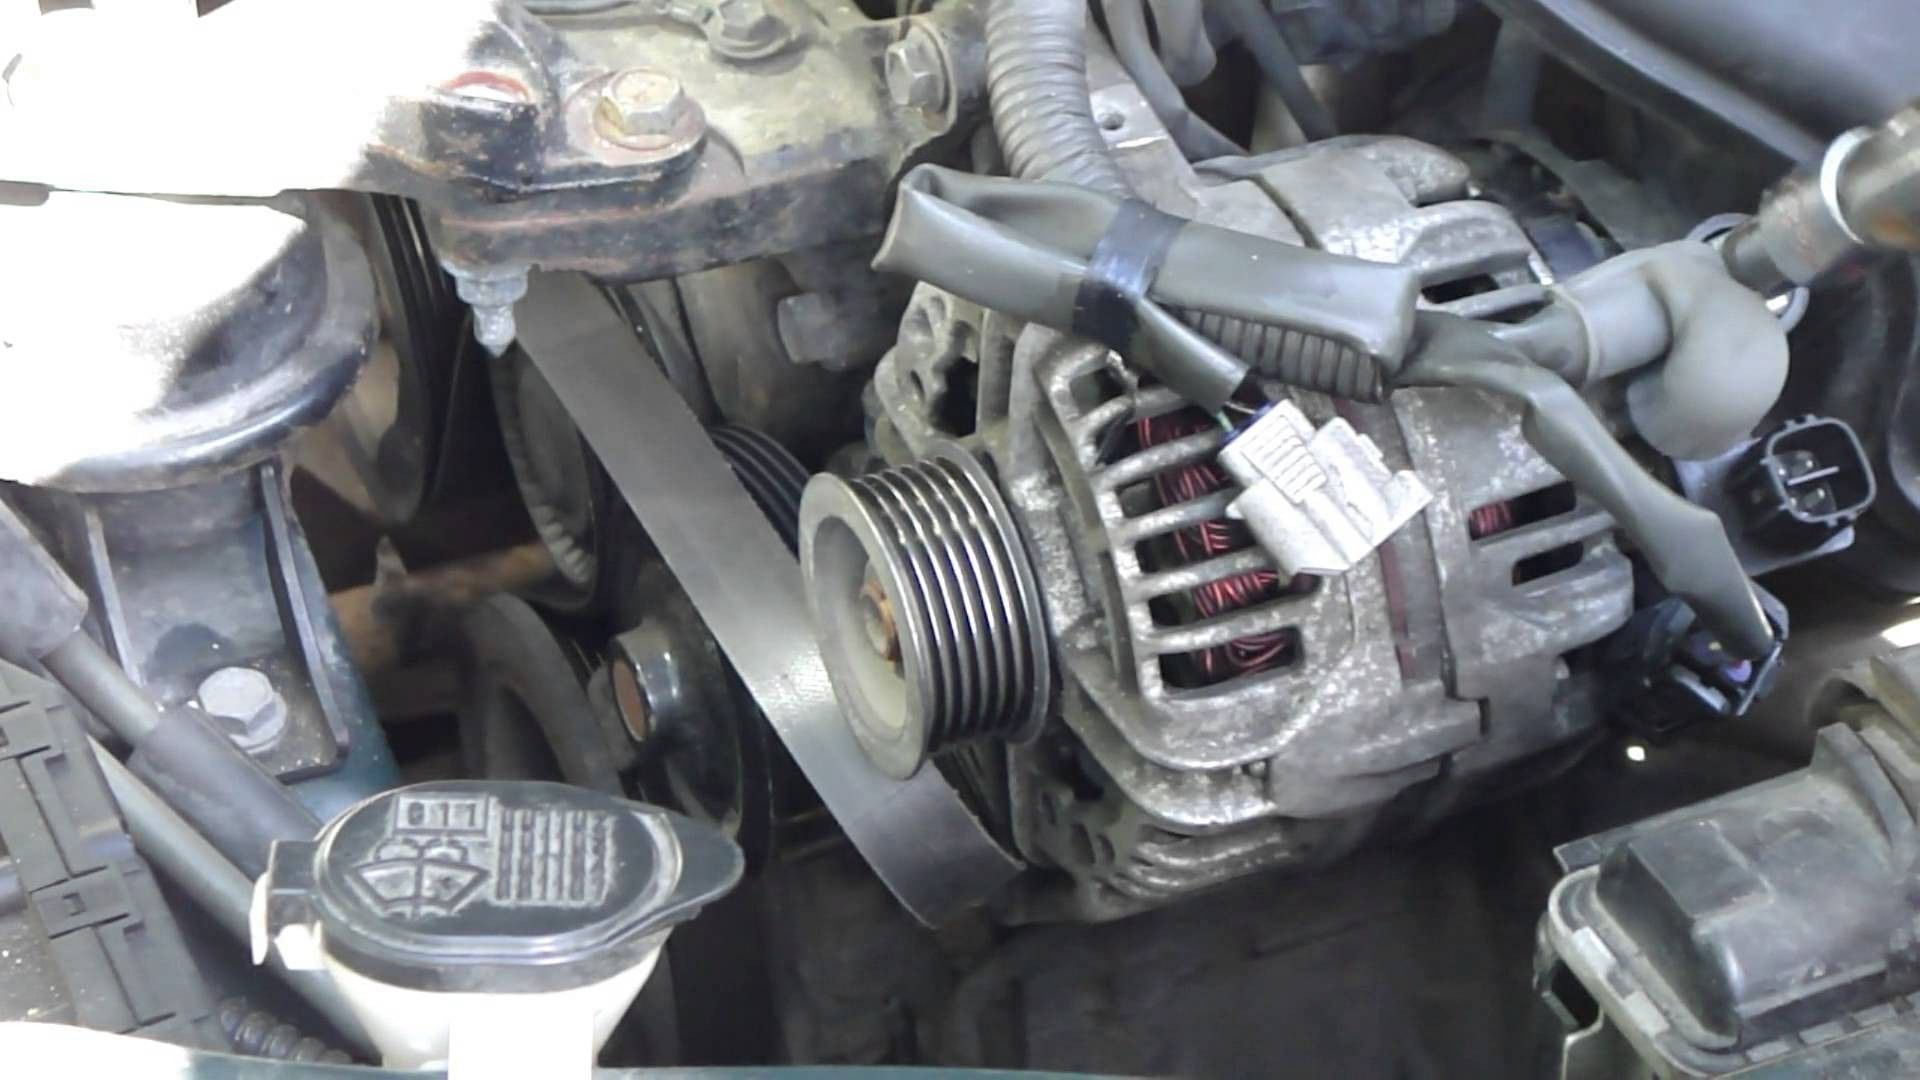 99 Toyota Camry Engine Diagram How To Replace Exhaust 92 Change Alternator Corolla Vvt I Years 2000